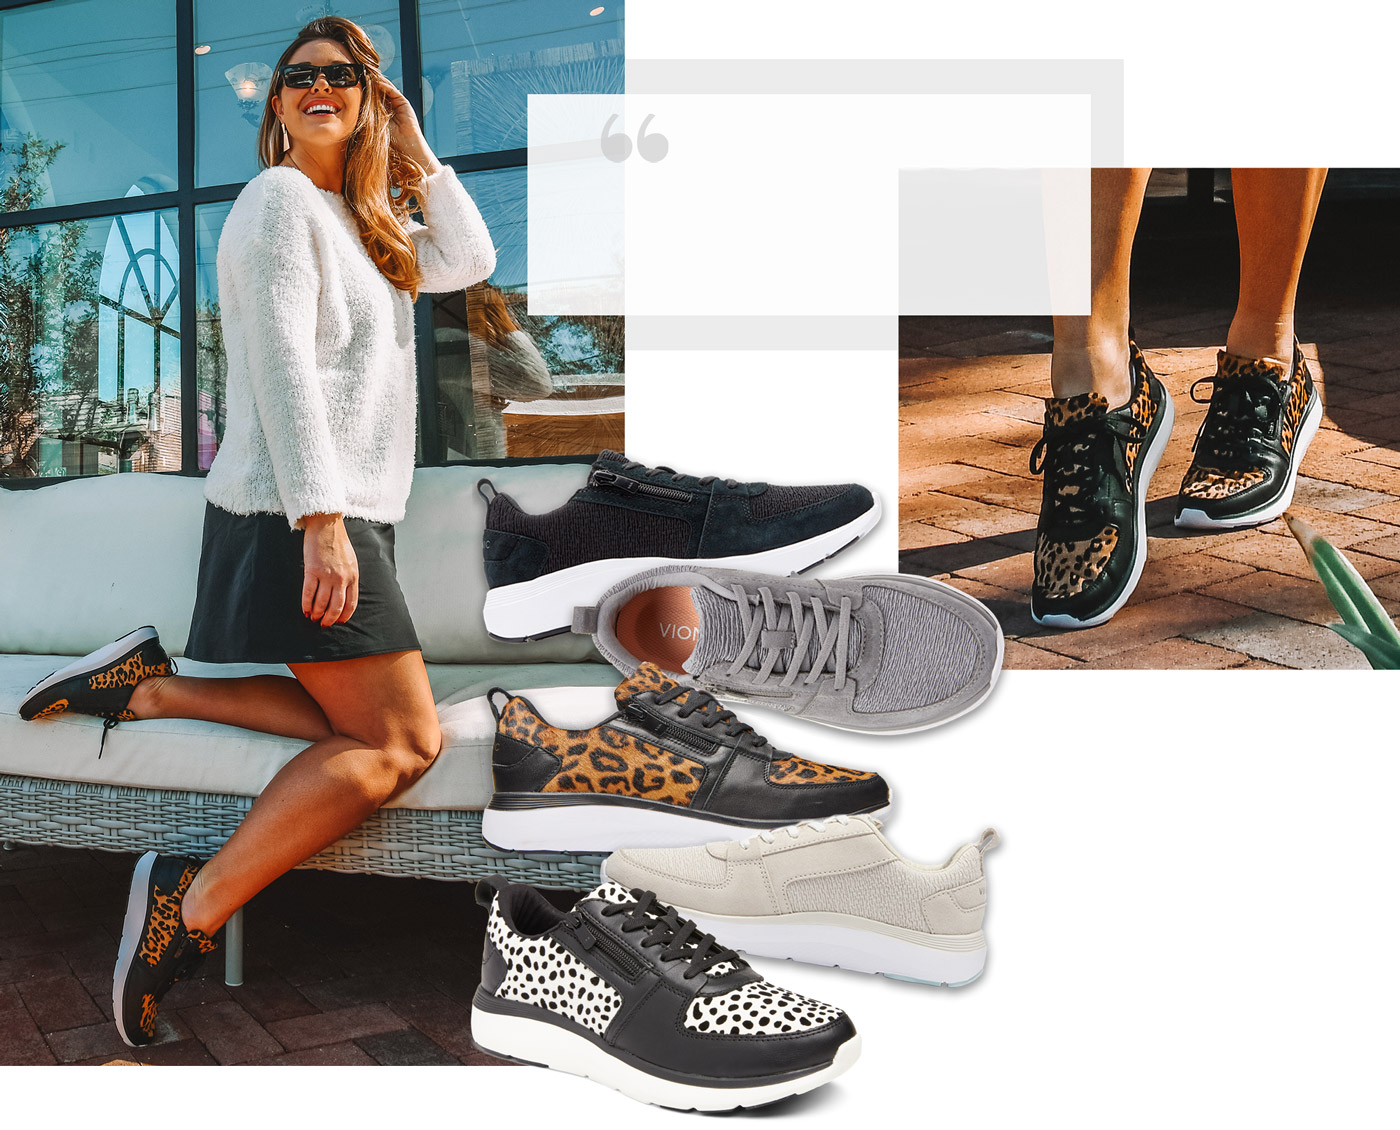 Jac styles the Vionic Remi trainers